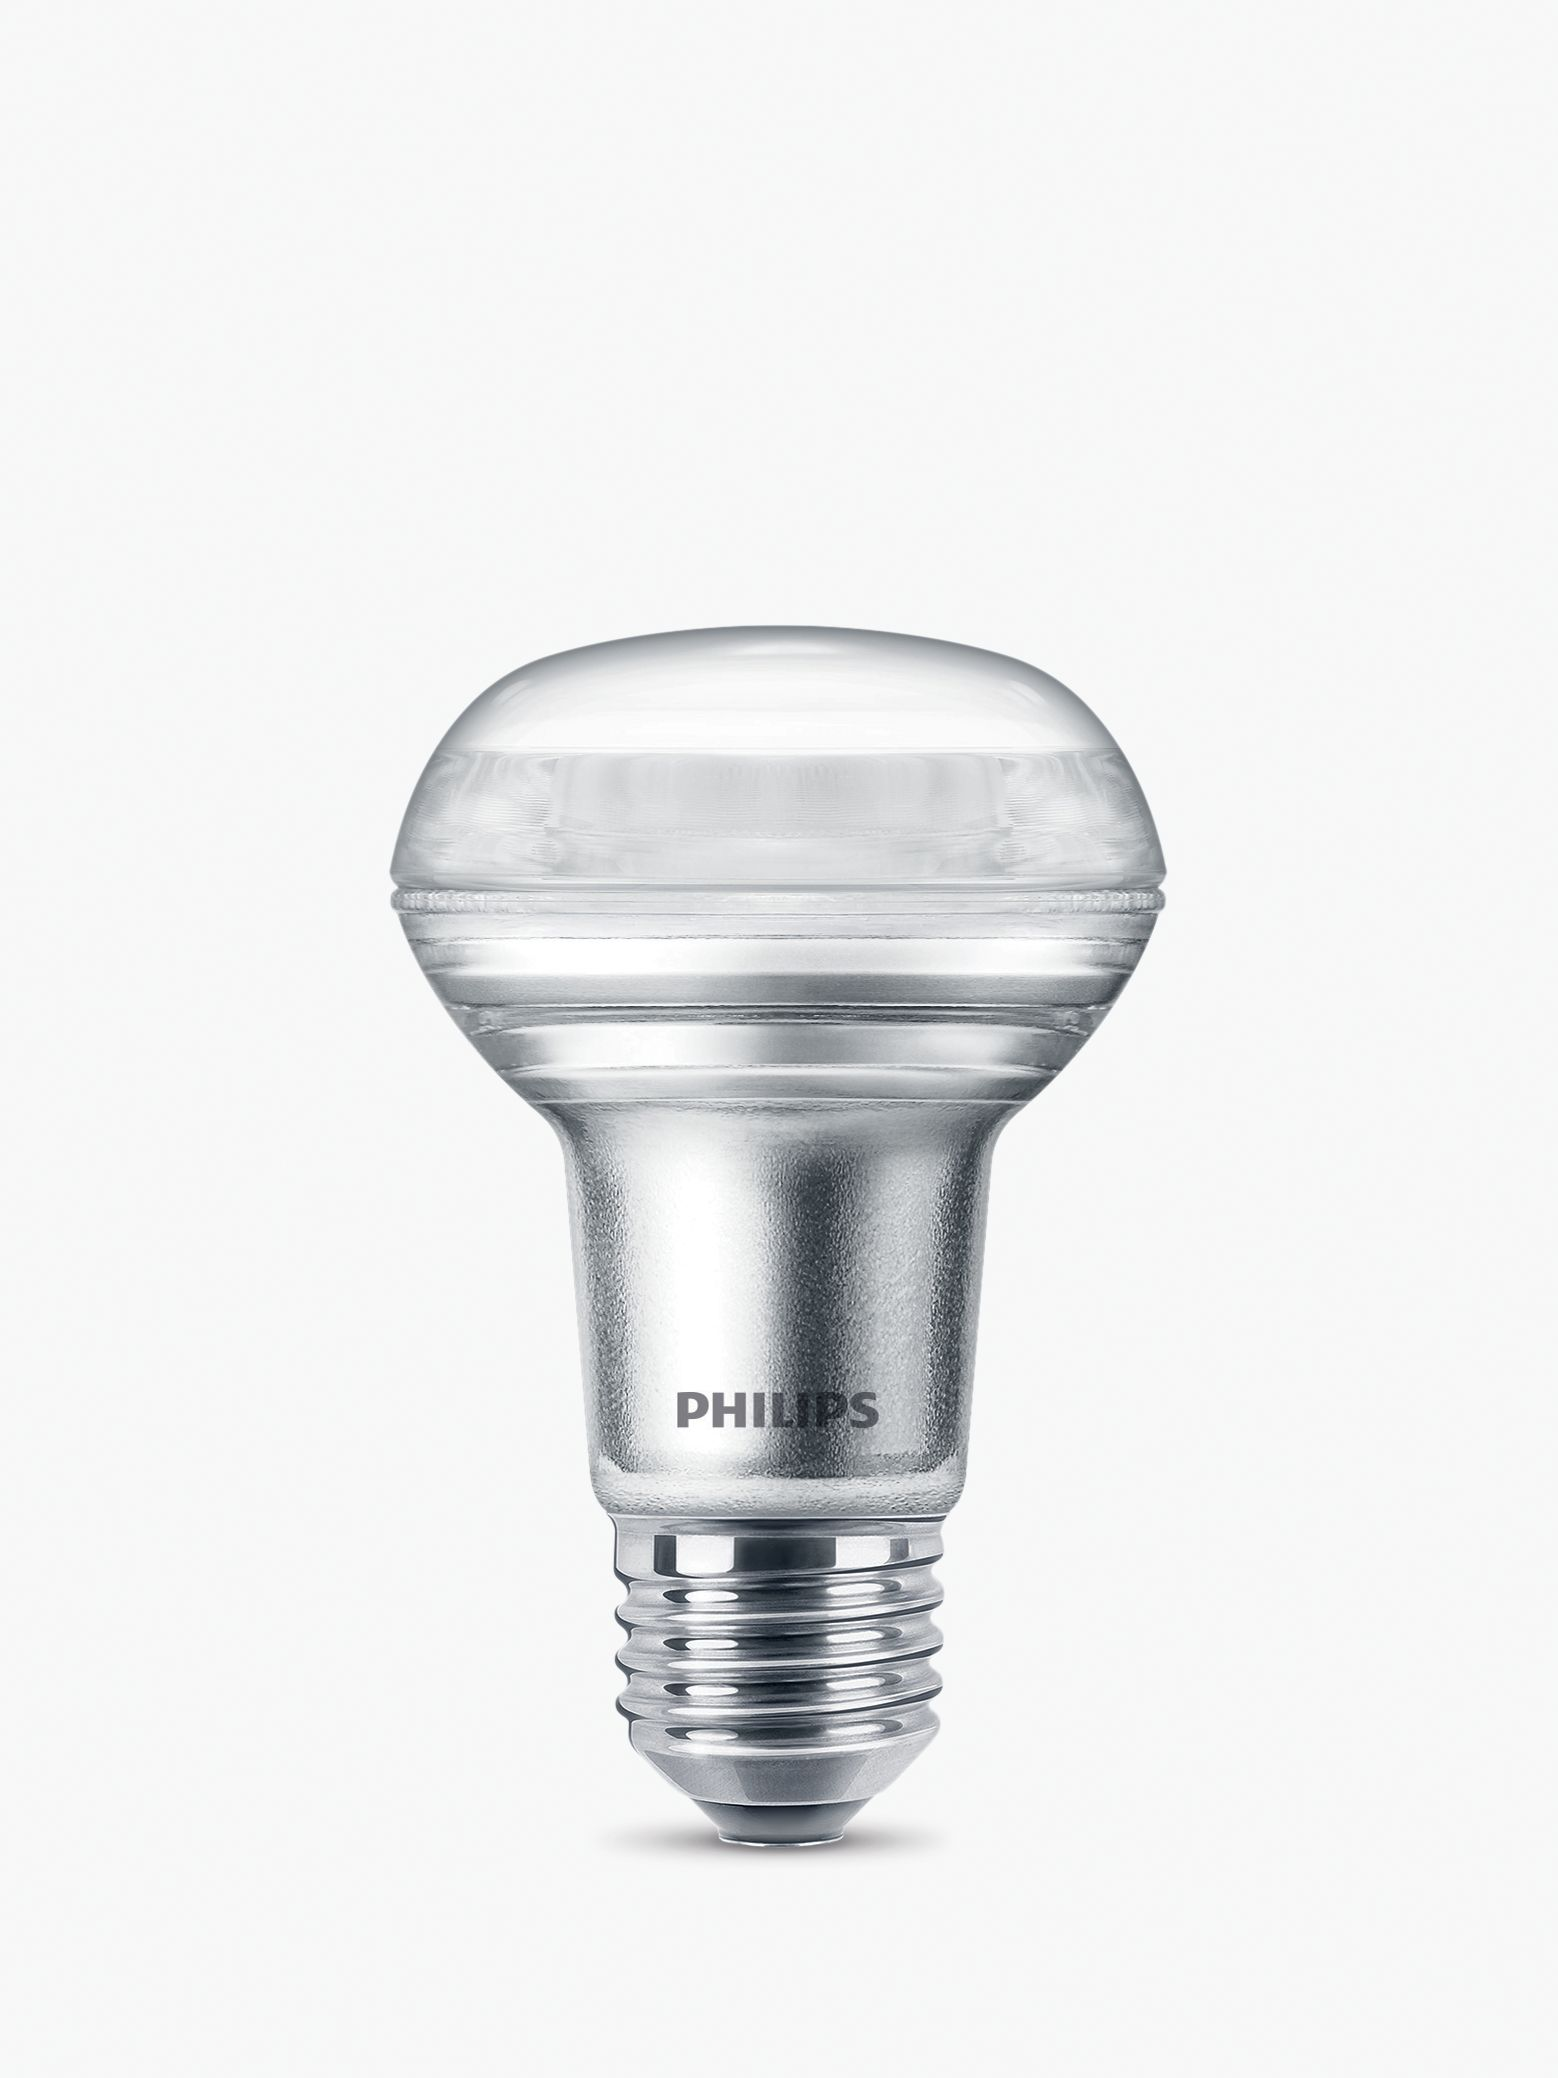 Philips Philips 5W ES LED Dimmable Reflector R63 Bulb, Clear